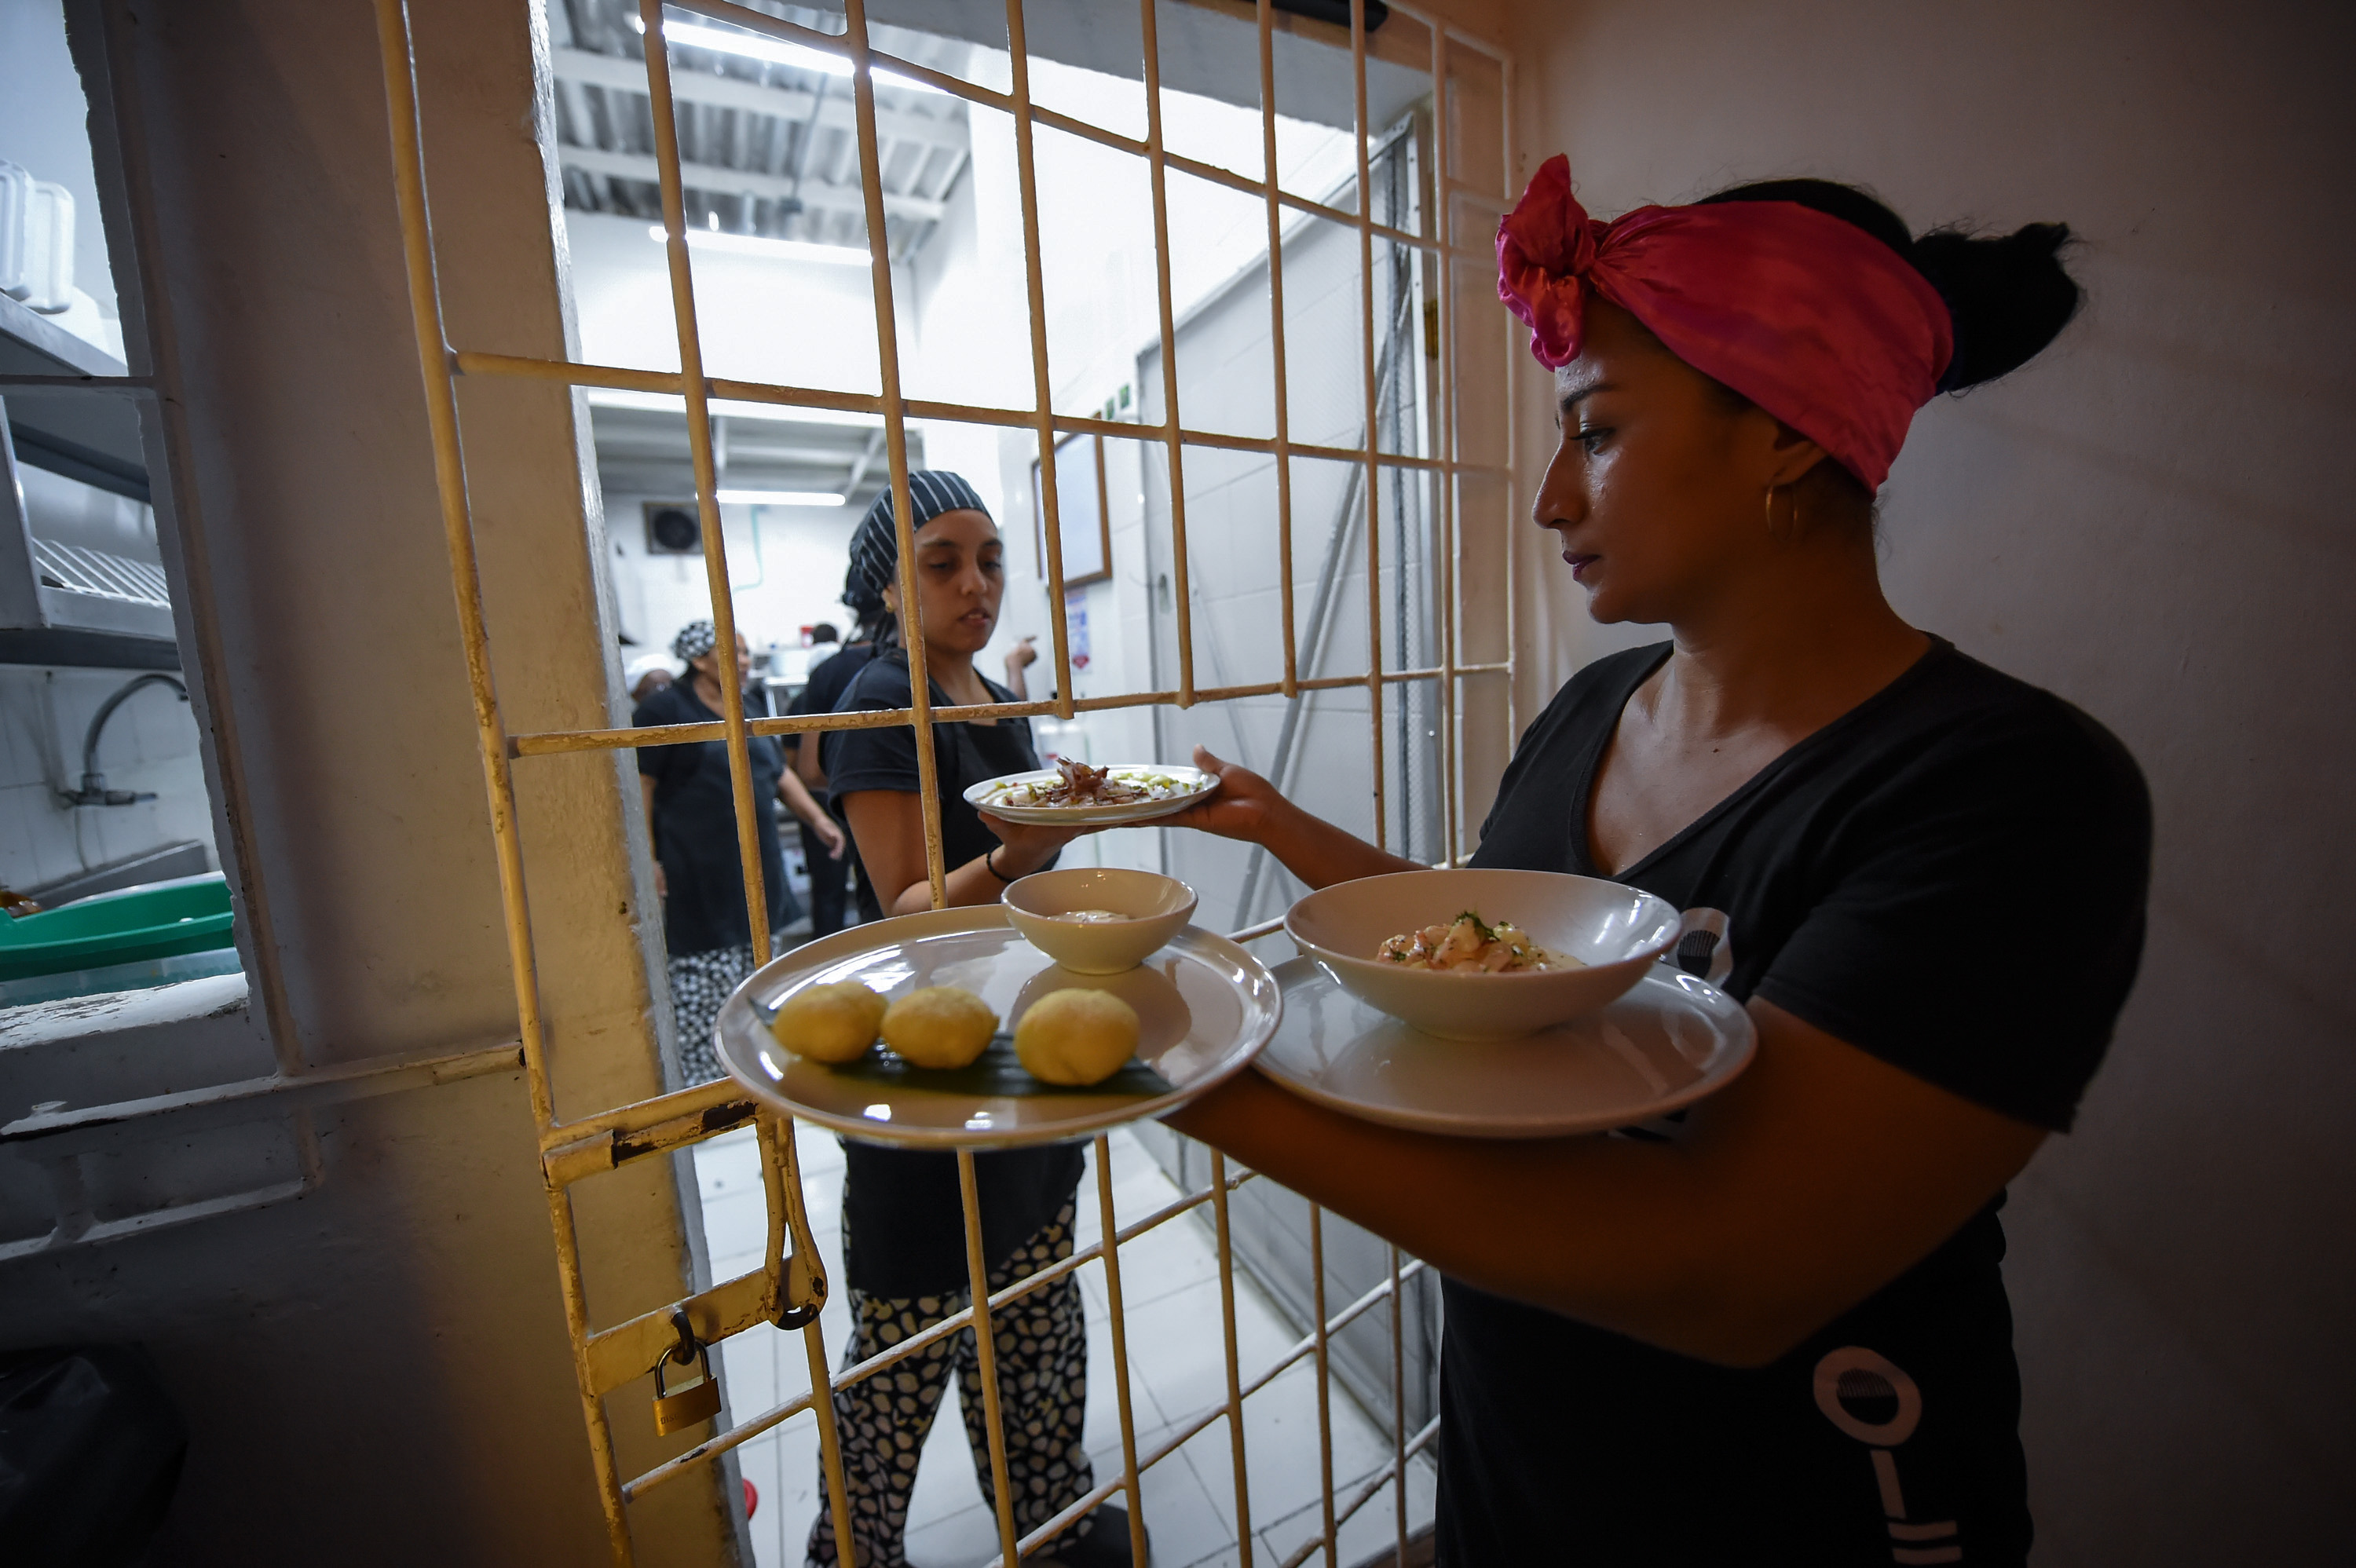 Slide 65 of 77: Colombian inmates work at the Interno restaurant in the San Diego jail in Cartagena, Colombia on August 24, 2017.  The Interno is the first restaurant in the country to operate inside a women's prison, sponsored by the Internal Theater foundation. Inmates receive training in this initiative that gives them a second chance at life and reintegration in society. / AFP PHOTO / Raul Arboleda        (Photo credit should read RAUL ARBOLEDA/AFP/Getty Images)